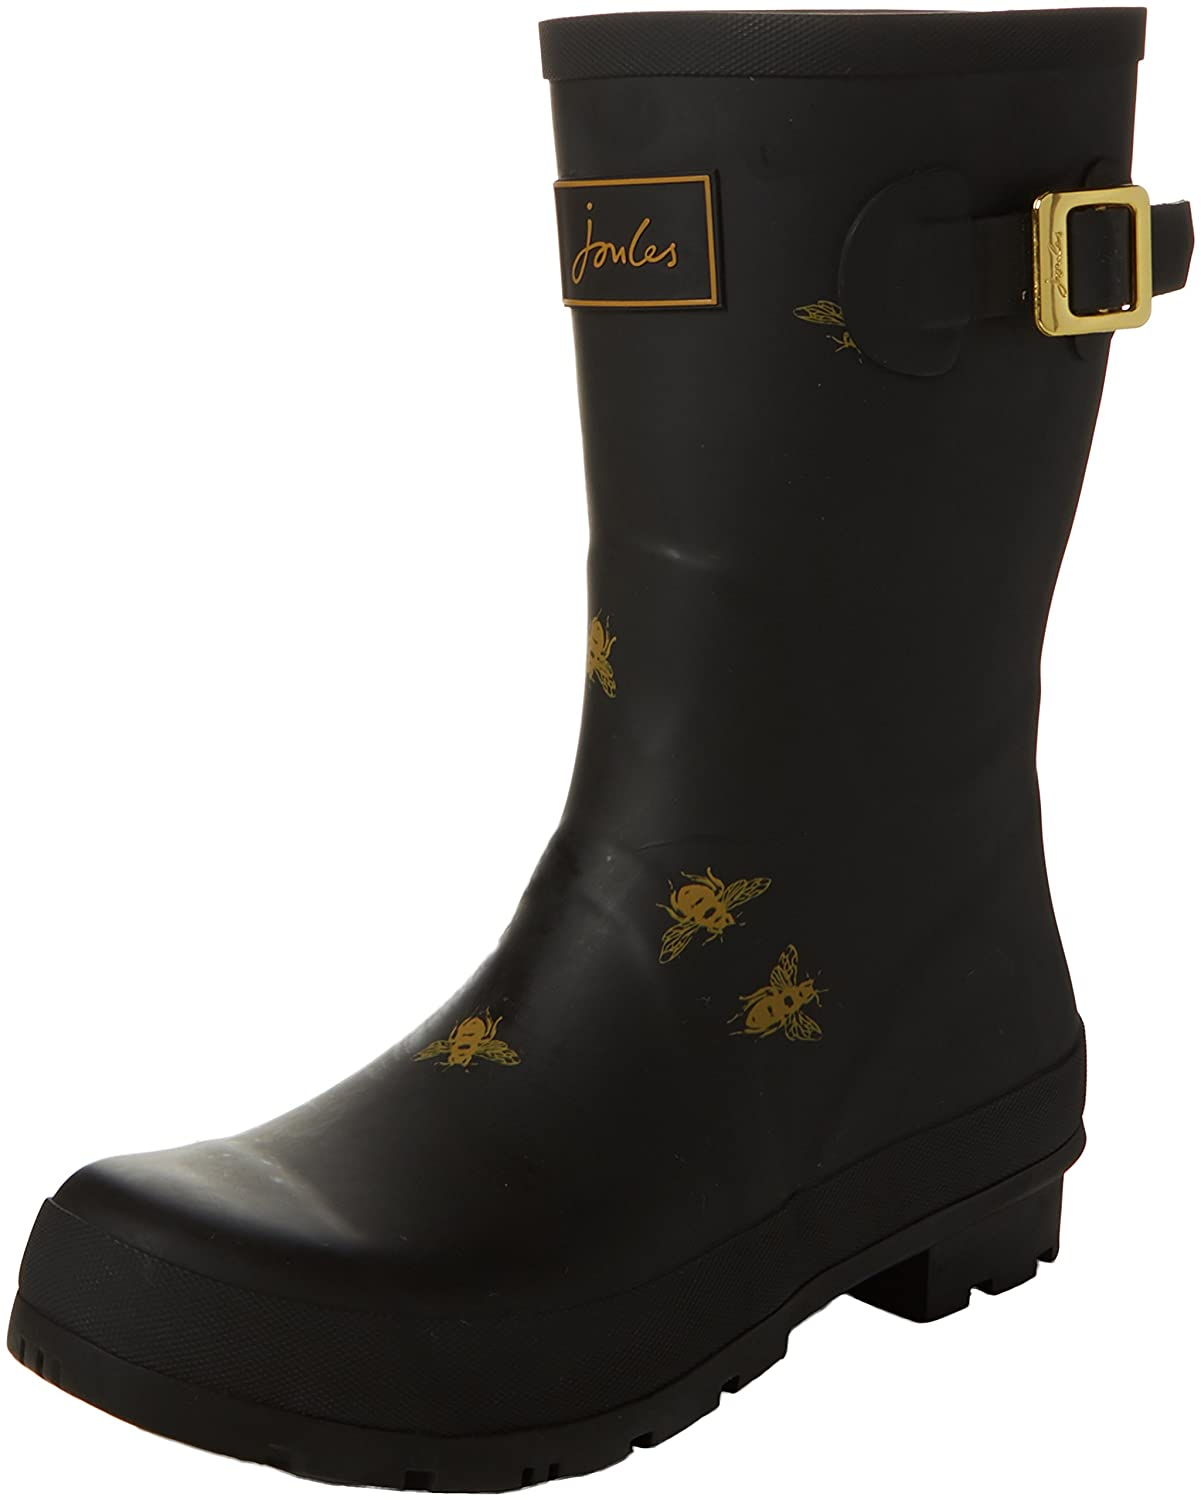 Joules Women's Molly Welly Rain Boot B06XGX6X57 10 B(M) US|Black Bees